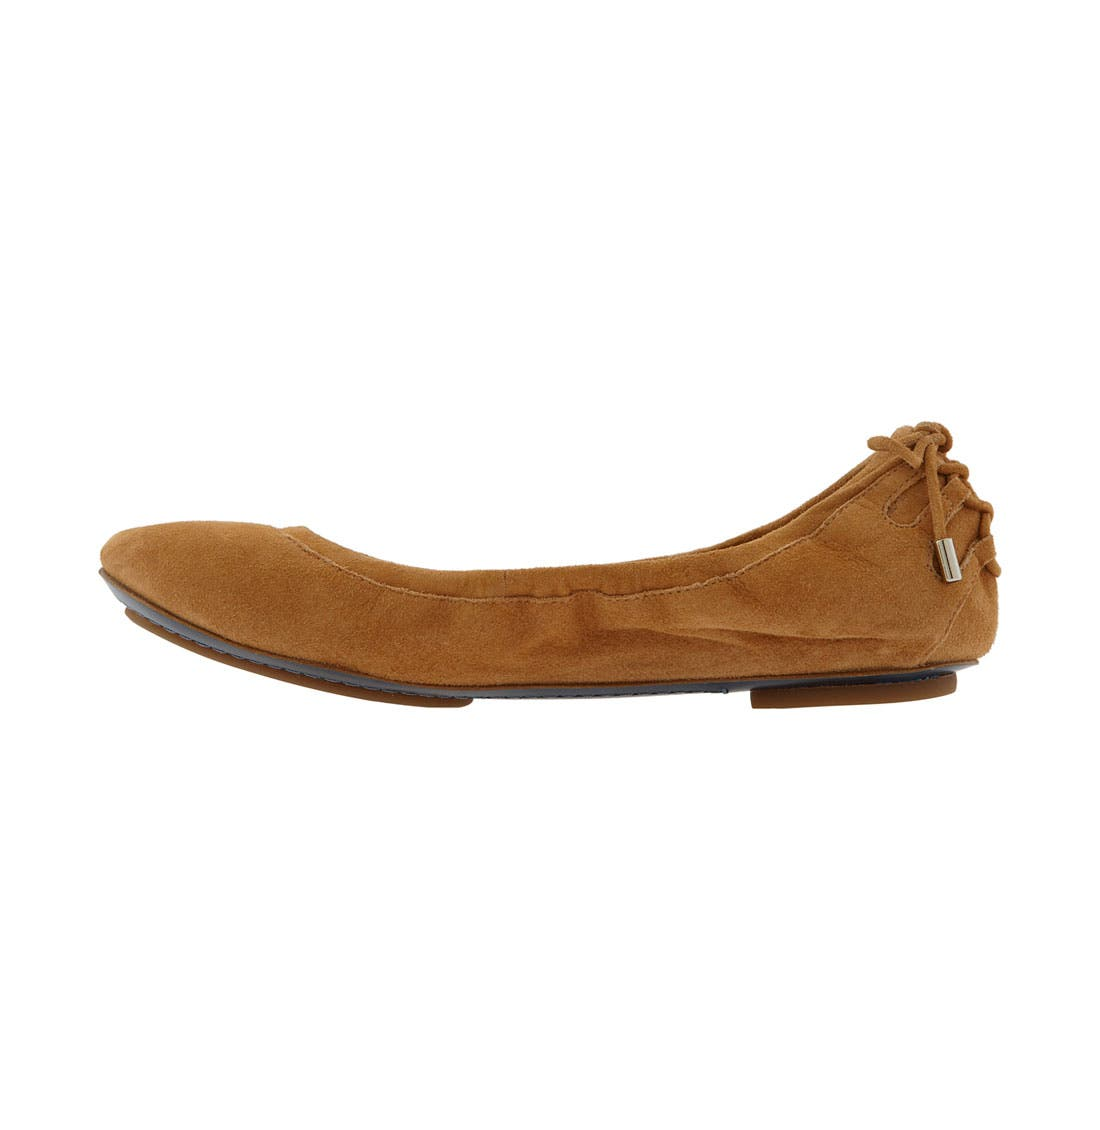 ,                             Maria Sharapova by Cole Haan 'Air Bacara' Flat,                             Alternate thumbnail 36, color,                             250